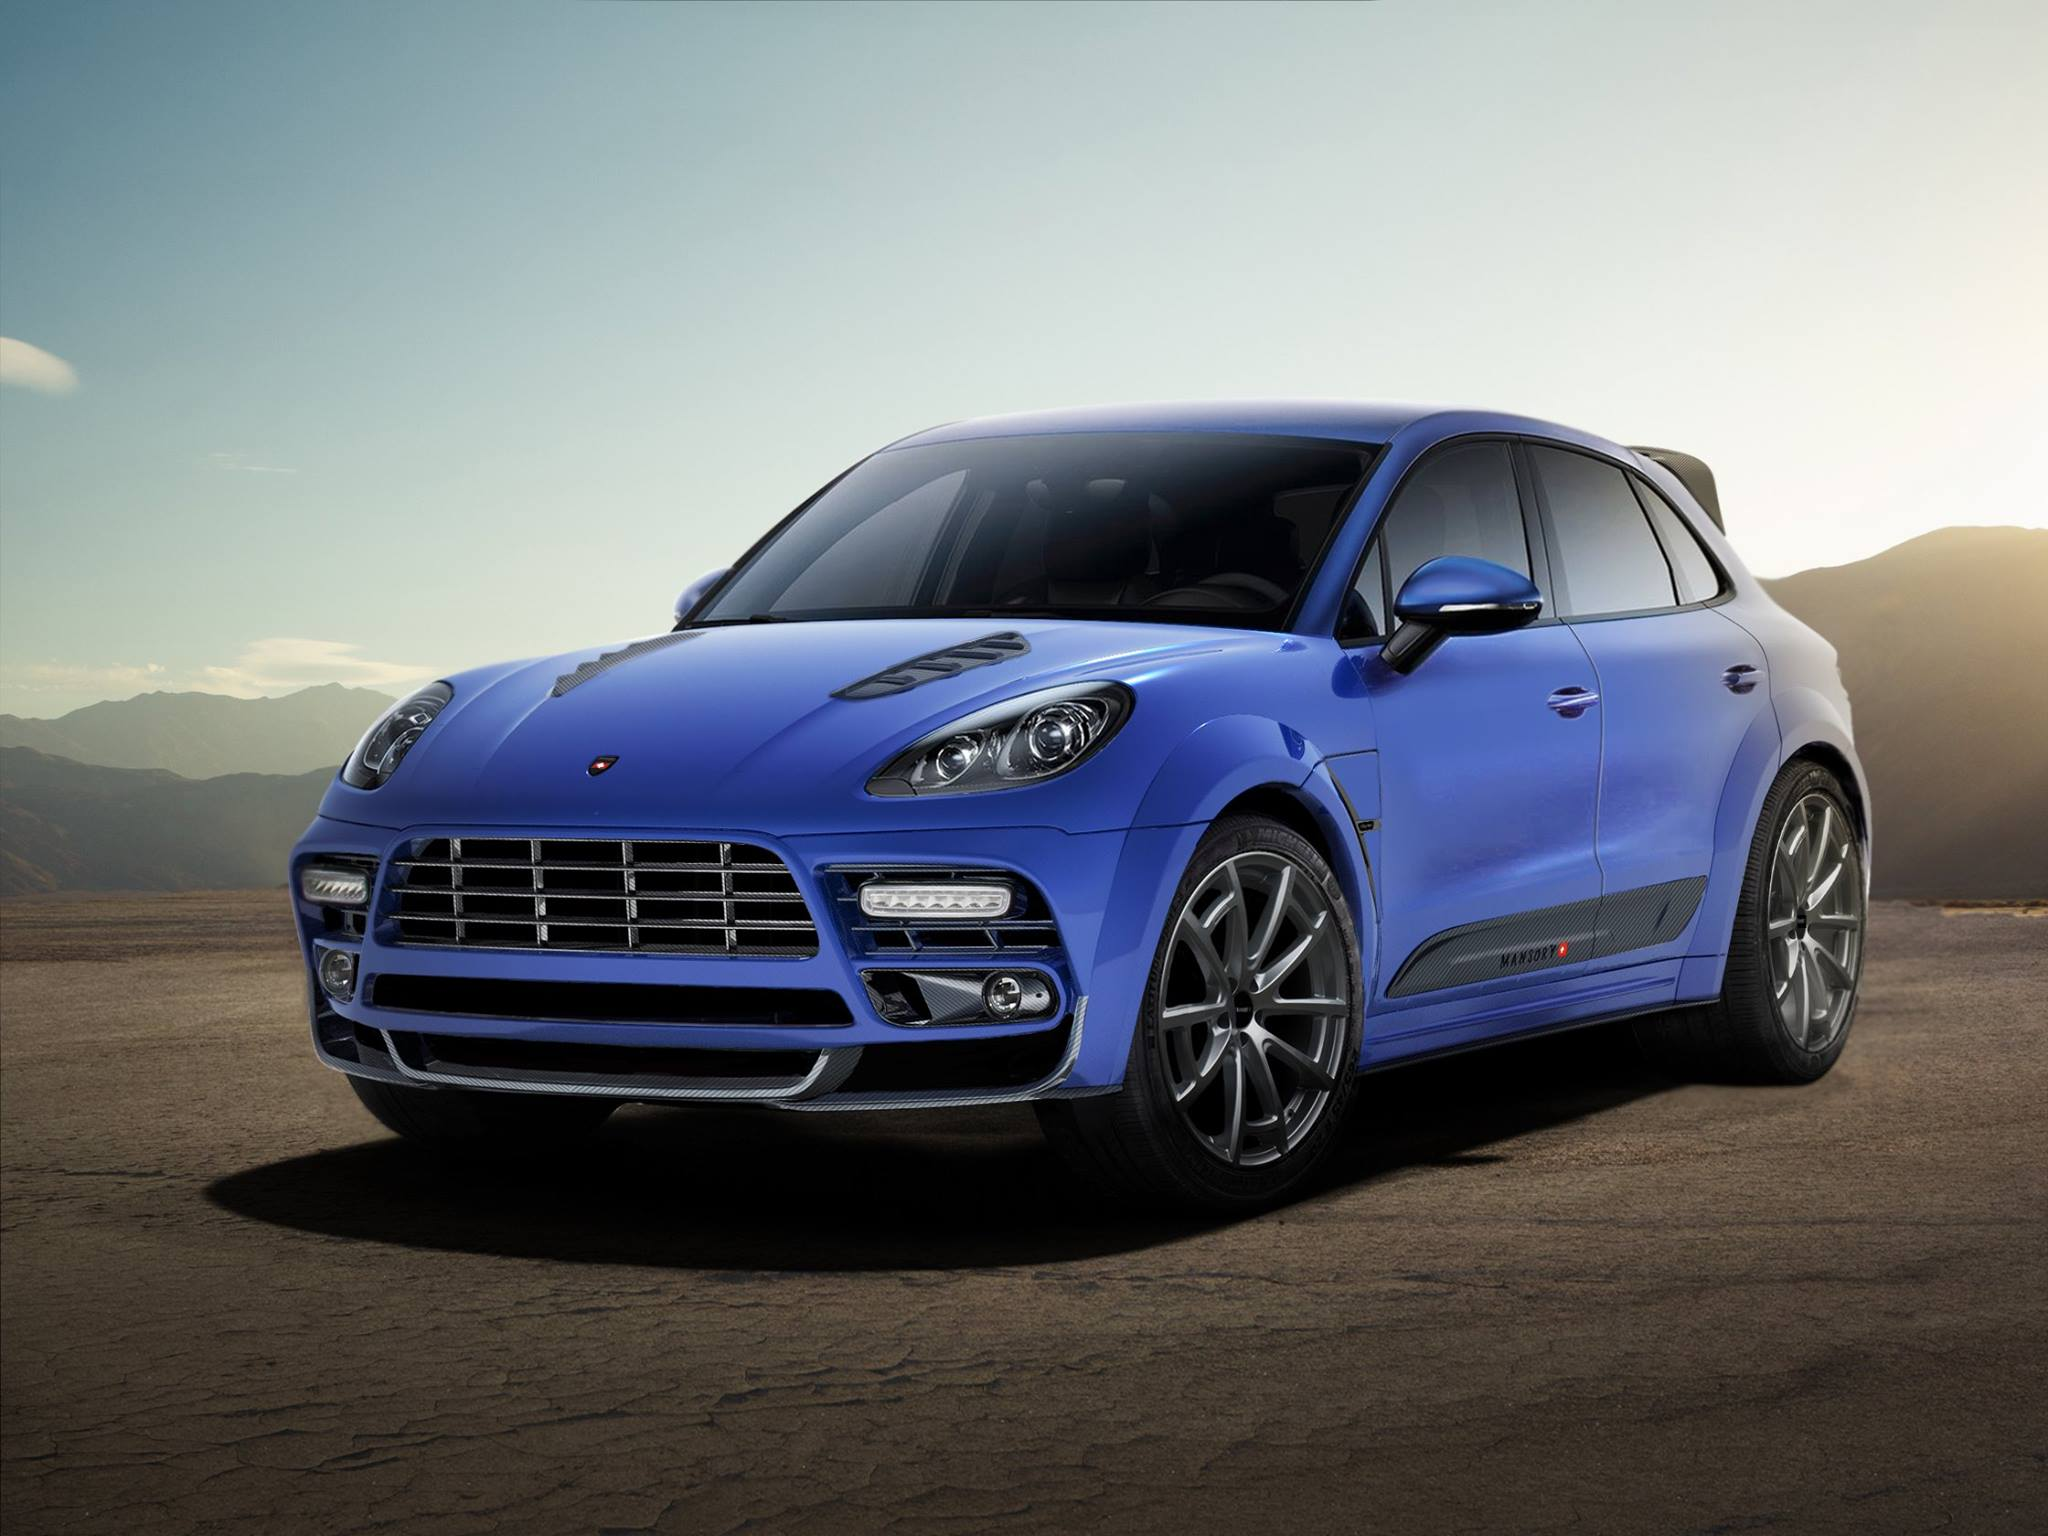 mansory touches the porsche macan suv outcome looks manly and ugly at the same time autoevolution. Black Bedroom Furniture Sets. Home Design Ideas